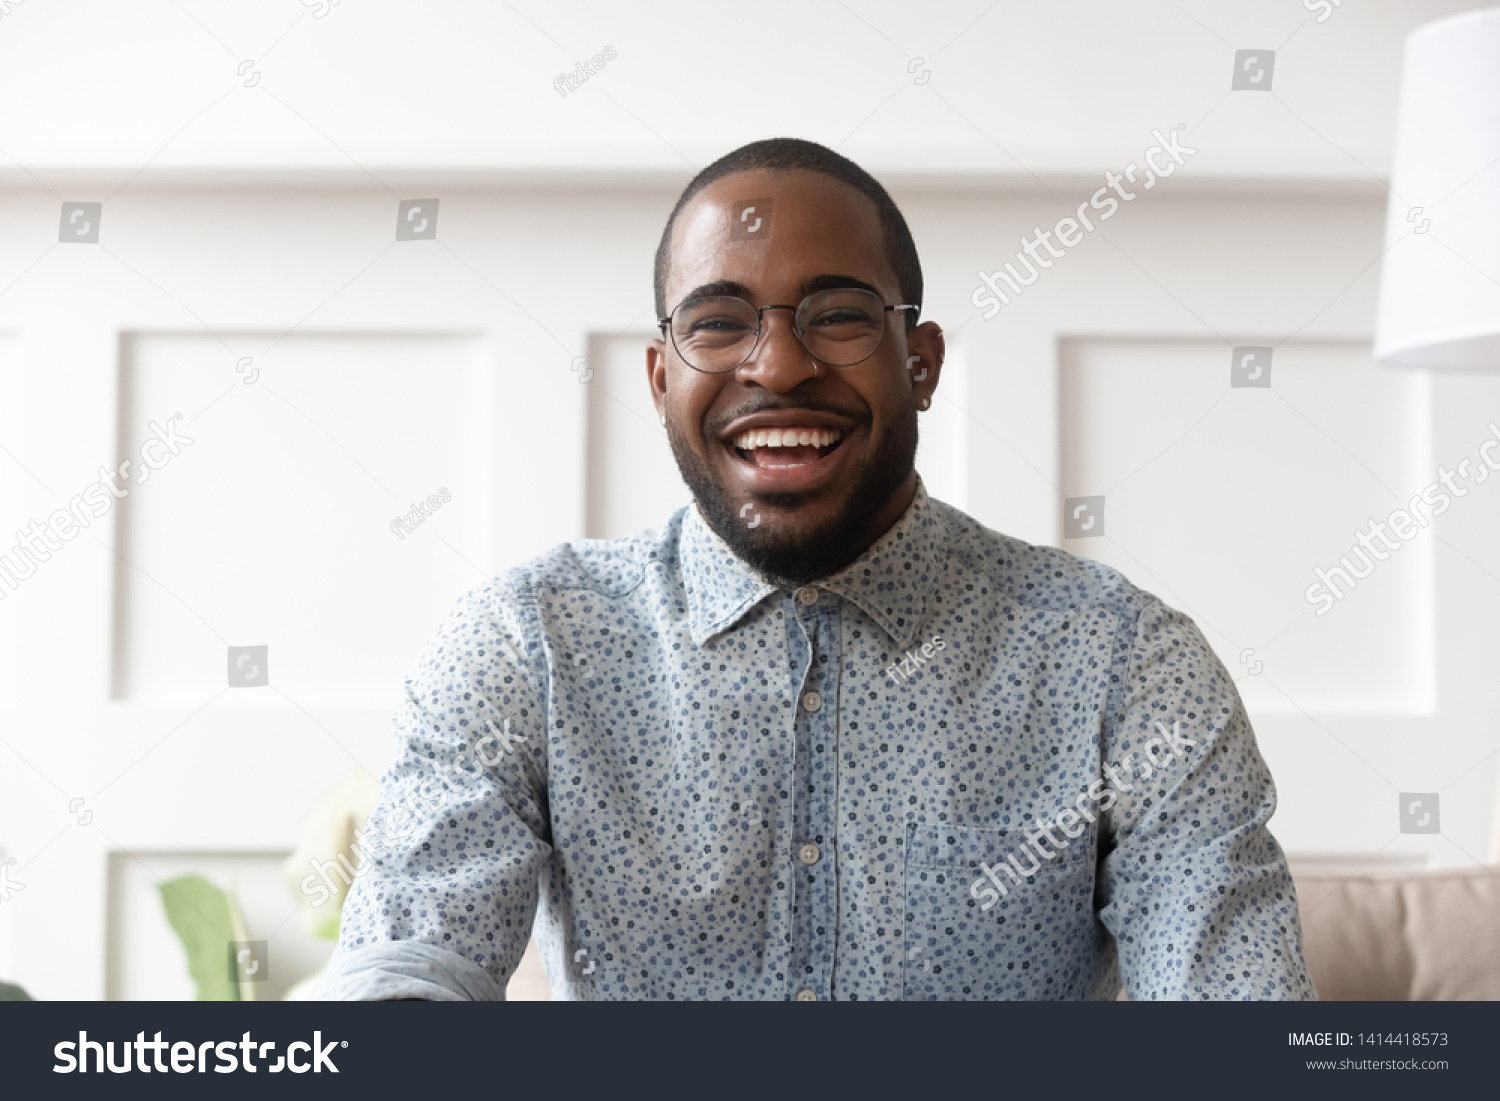 Happy cheerful young black man video calling looking at camera at home, smiling african guy communicate in internet chat recording vlog talking laughing enjoy online conversation, webcam view #1414418573